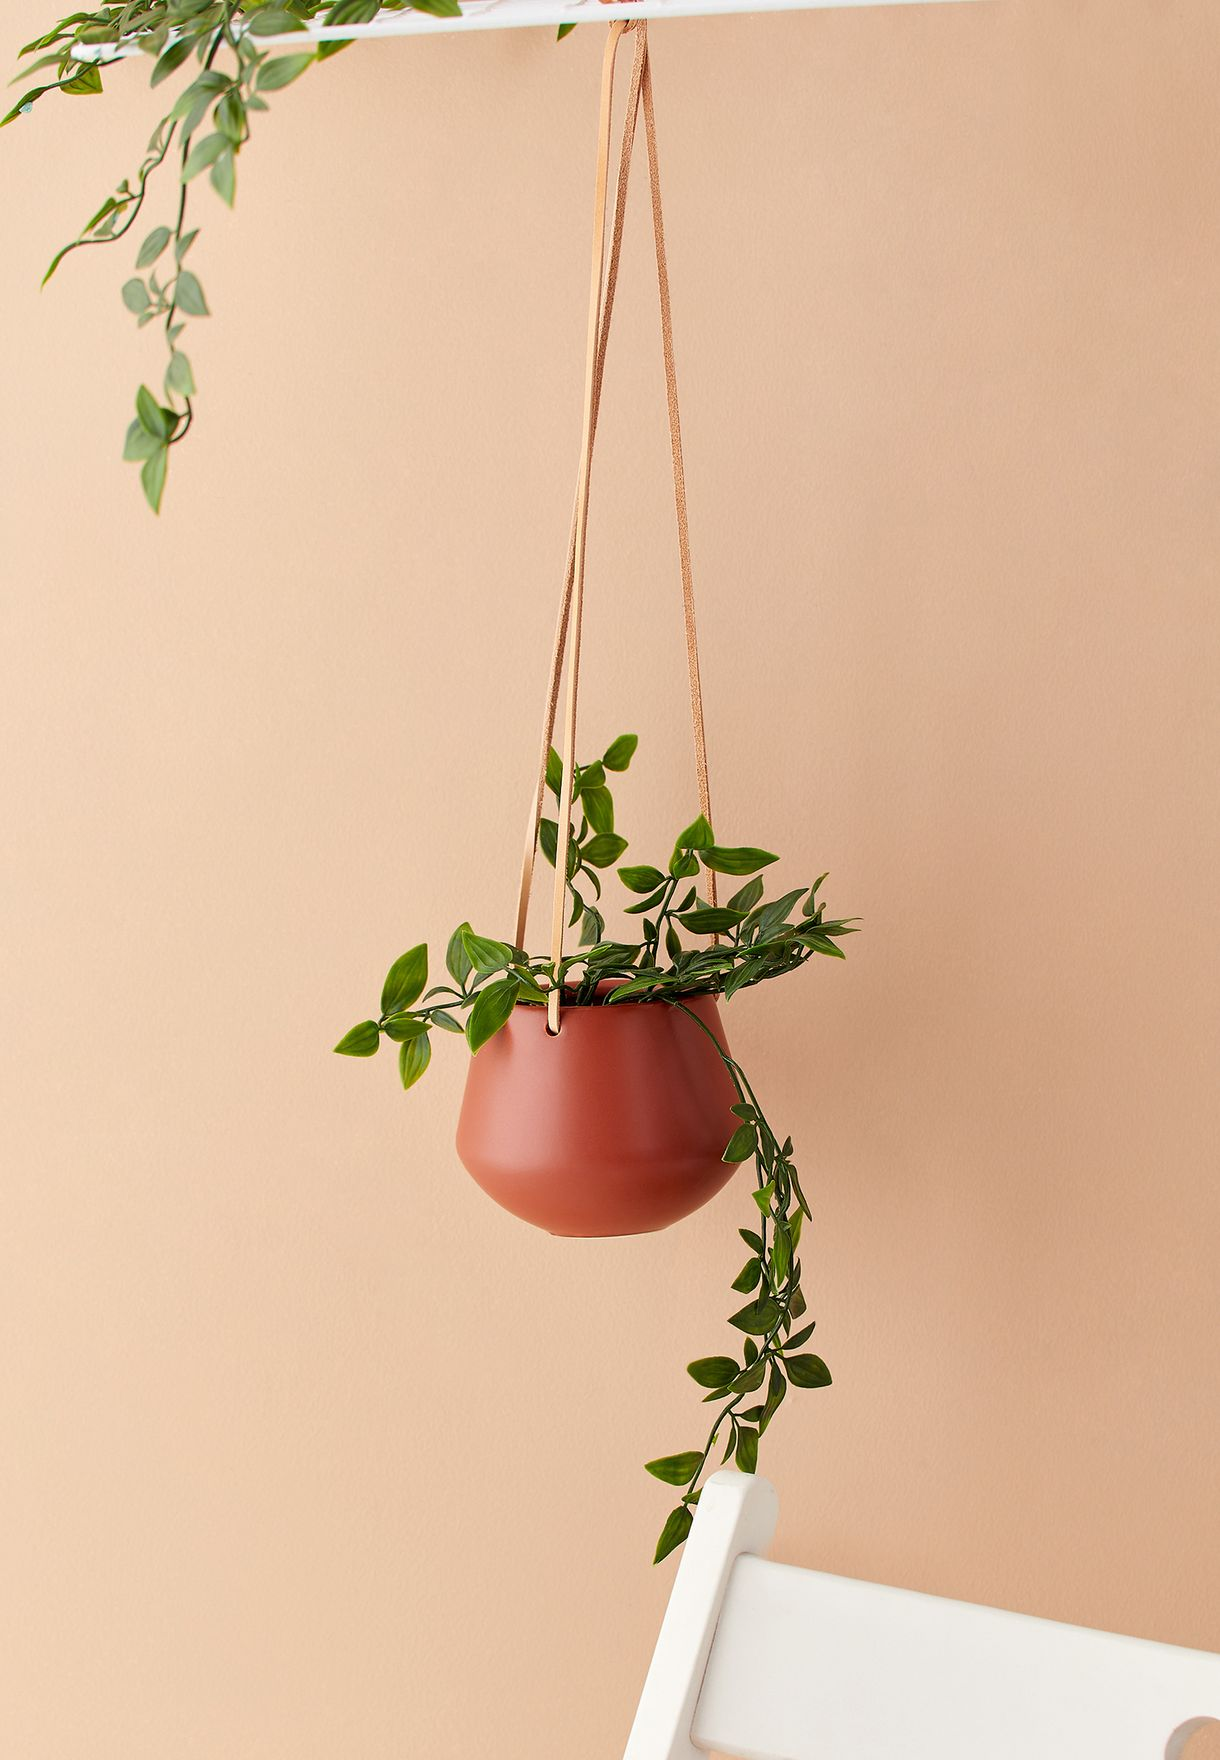 Hanging Pot Skittle Planter